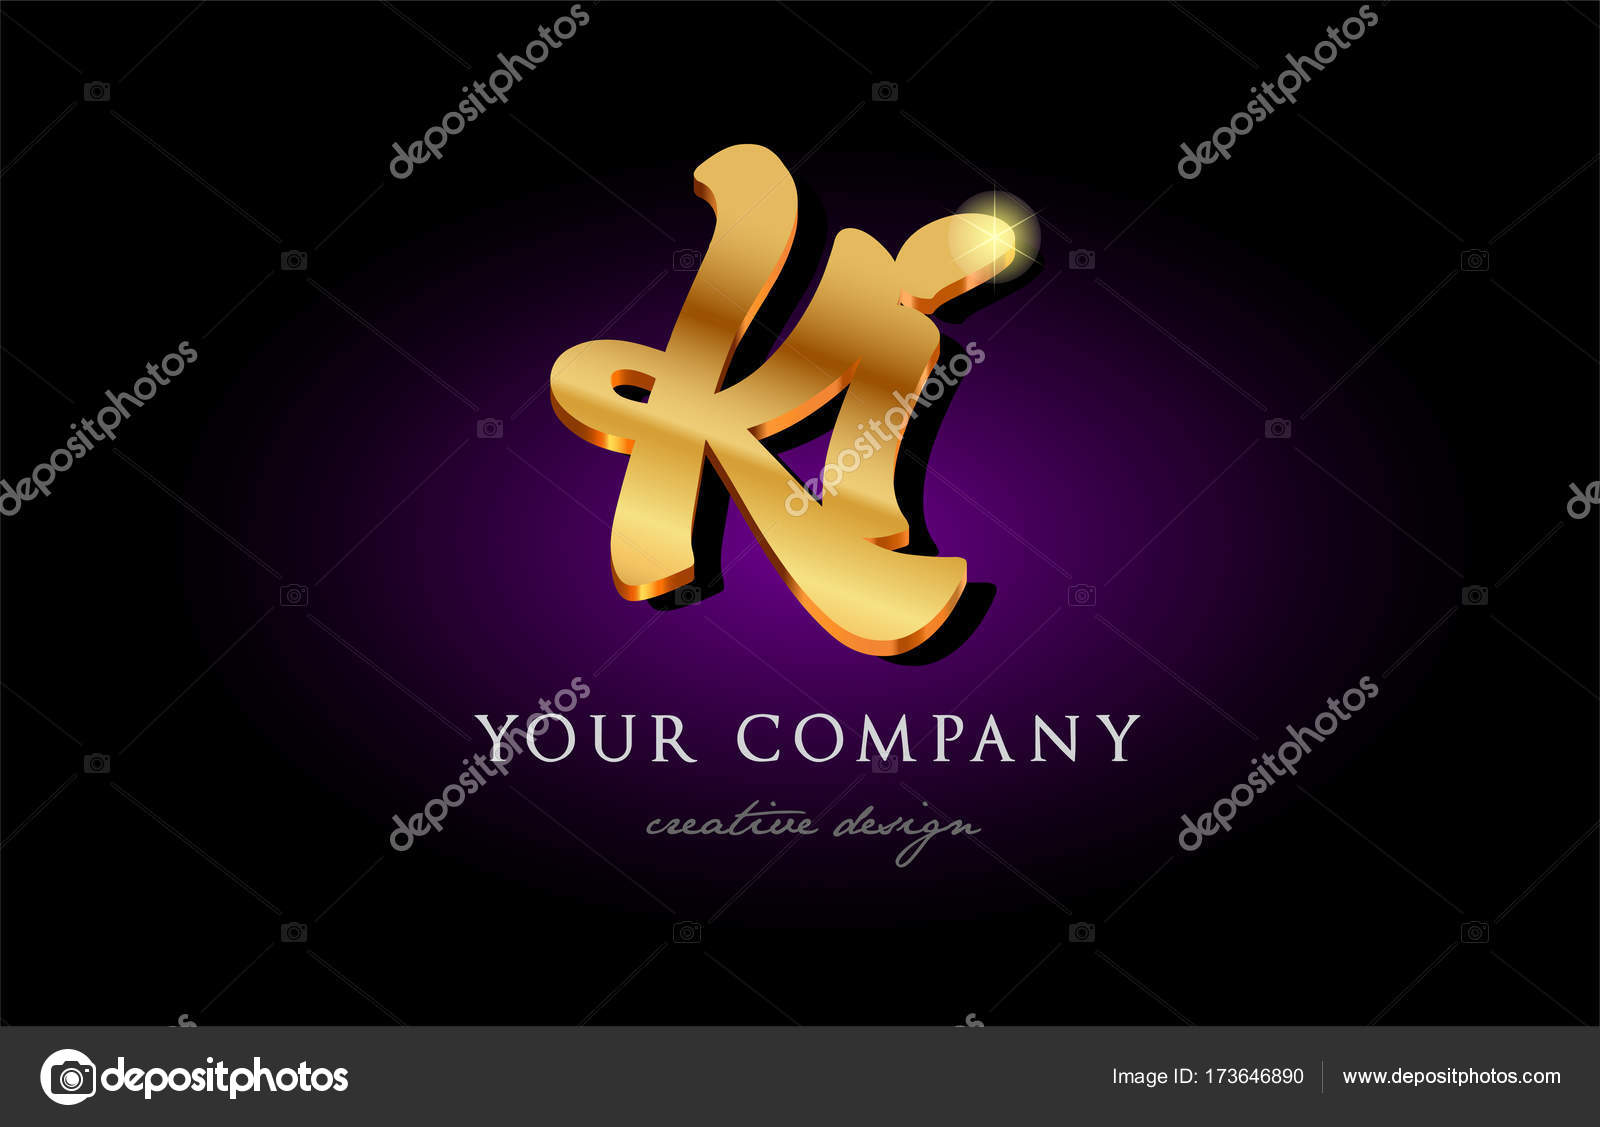 Ki K I 3d Gold Golden Alphabet Letter Metal Logo Icon Design H